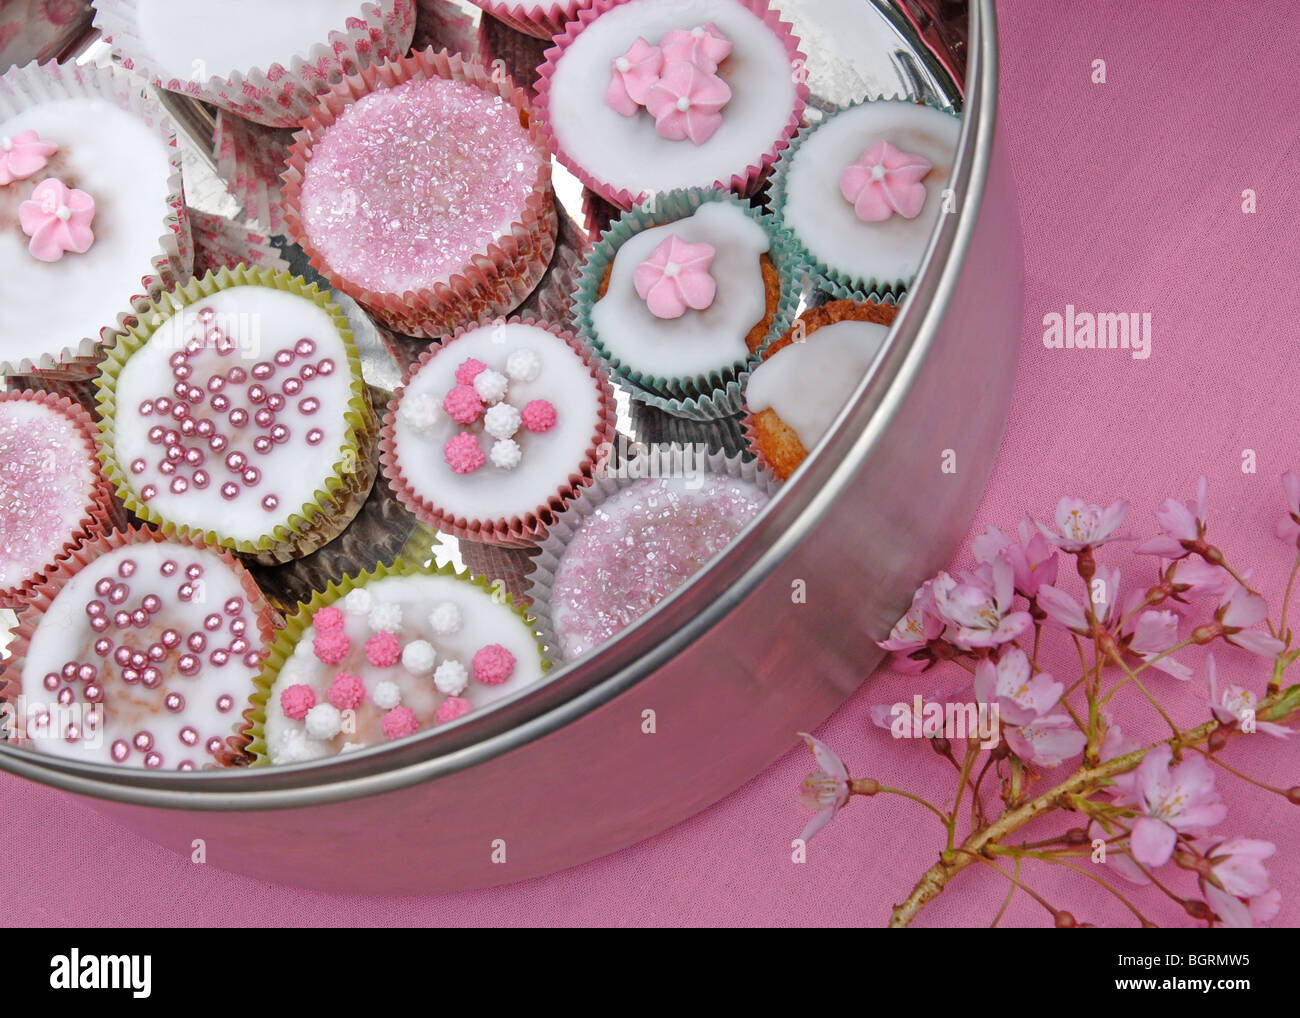 Silver cake tin with decorated fairy cakes on pink background with cherry blossom - Stock Image